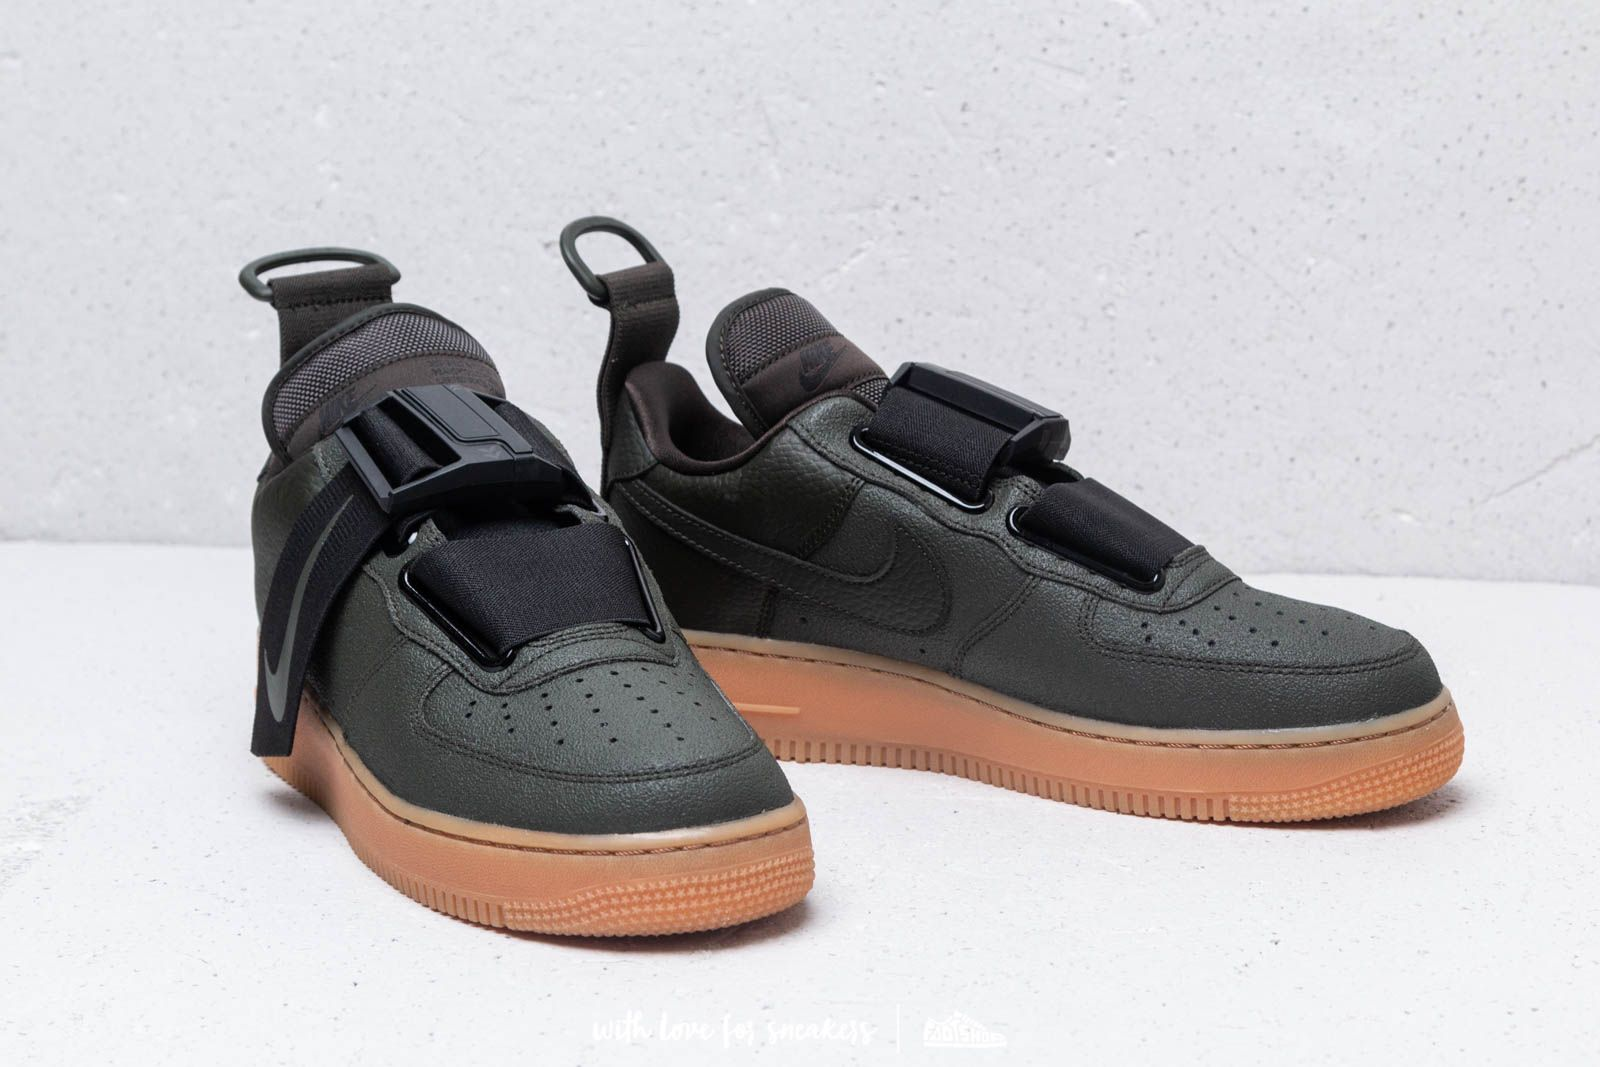 Nike Air Force 1 Utility Sequoia Black Gum Med Brown | Footshop